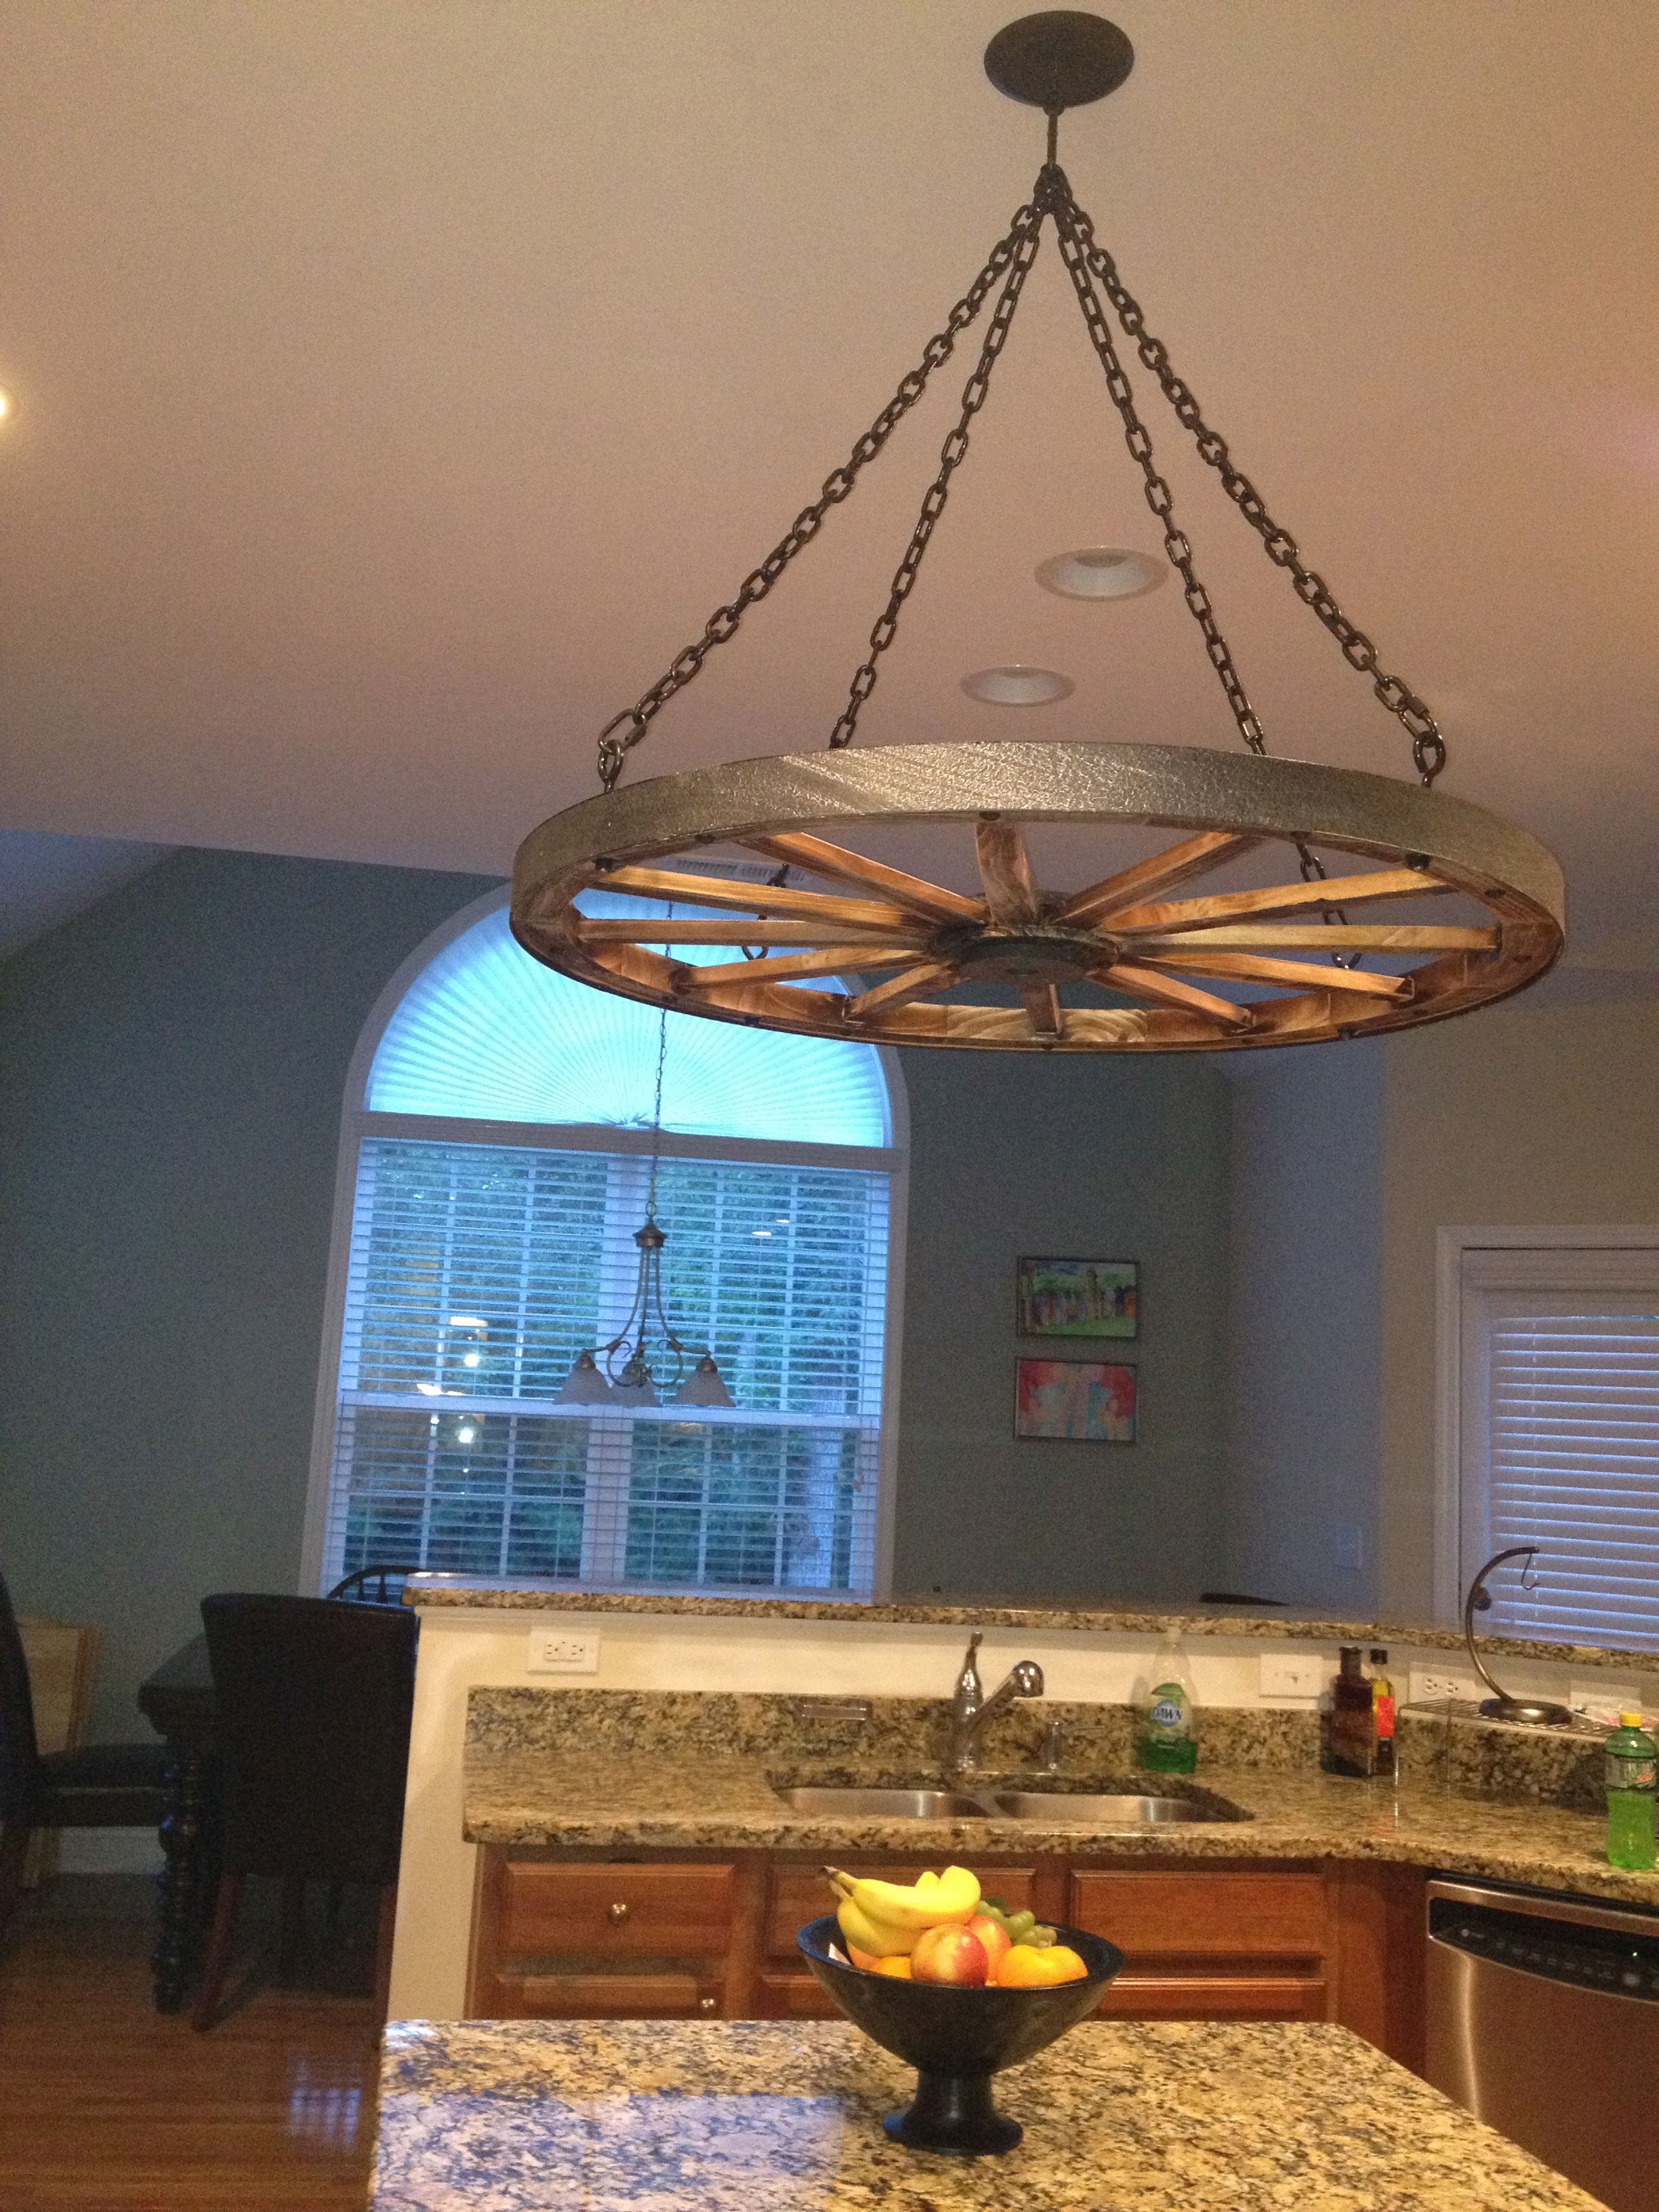 Diy Wagon Wheel Pot Rack Just Need Some S Hooks And It Is